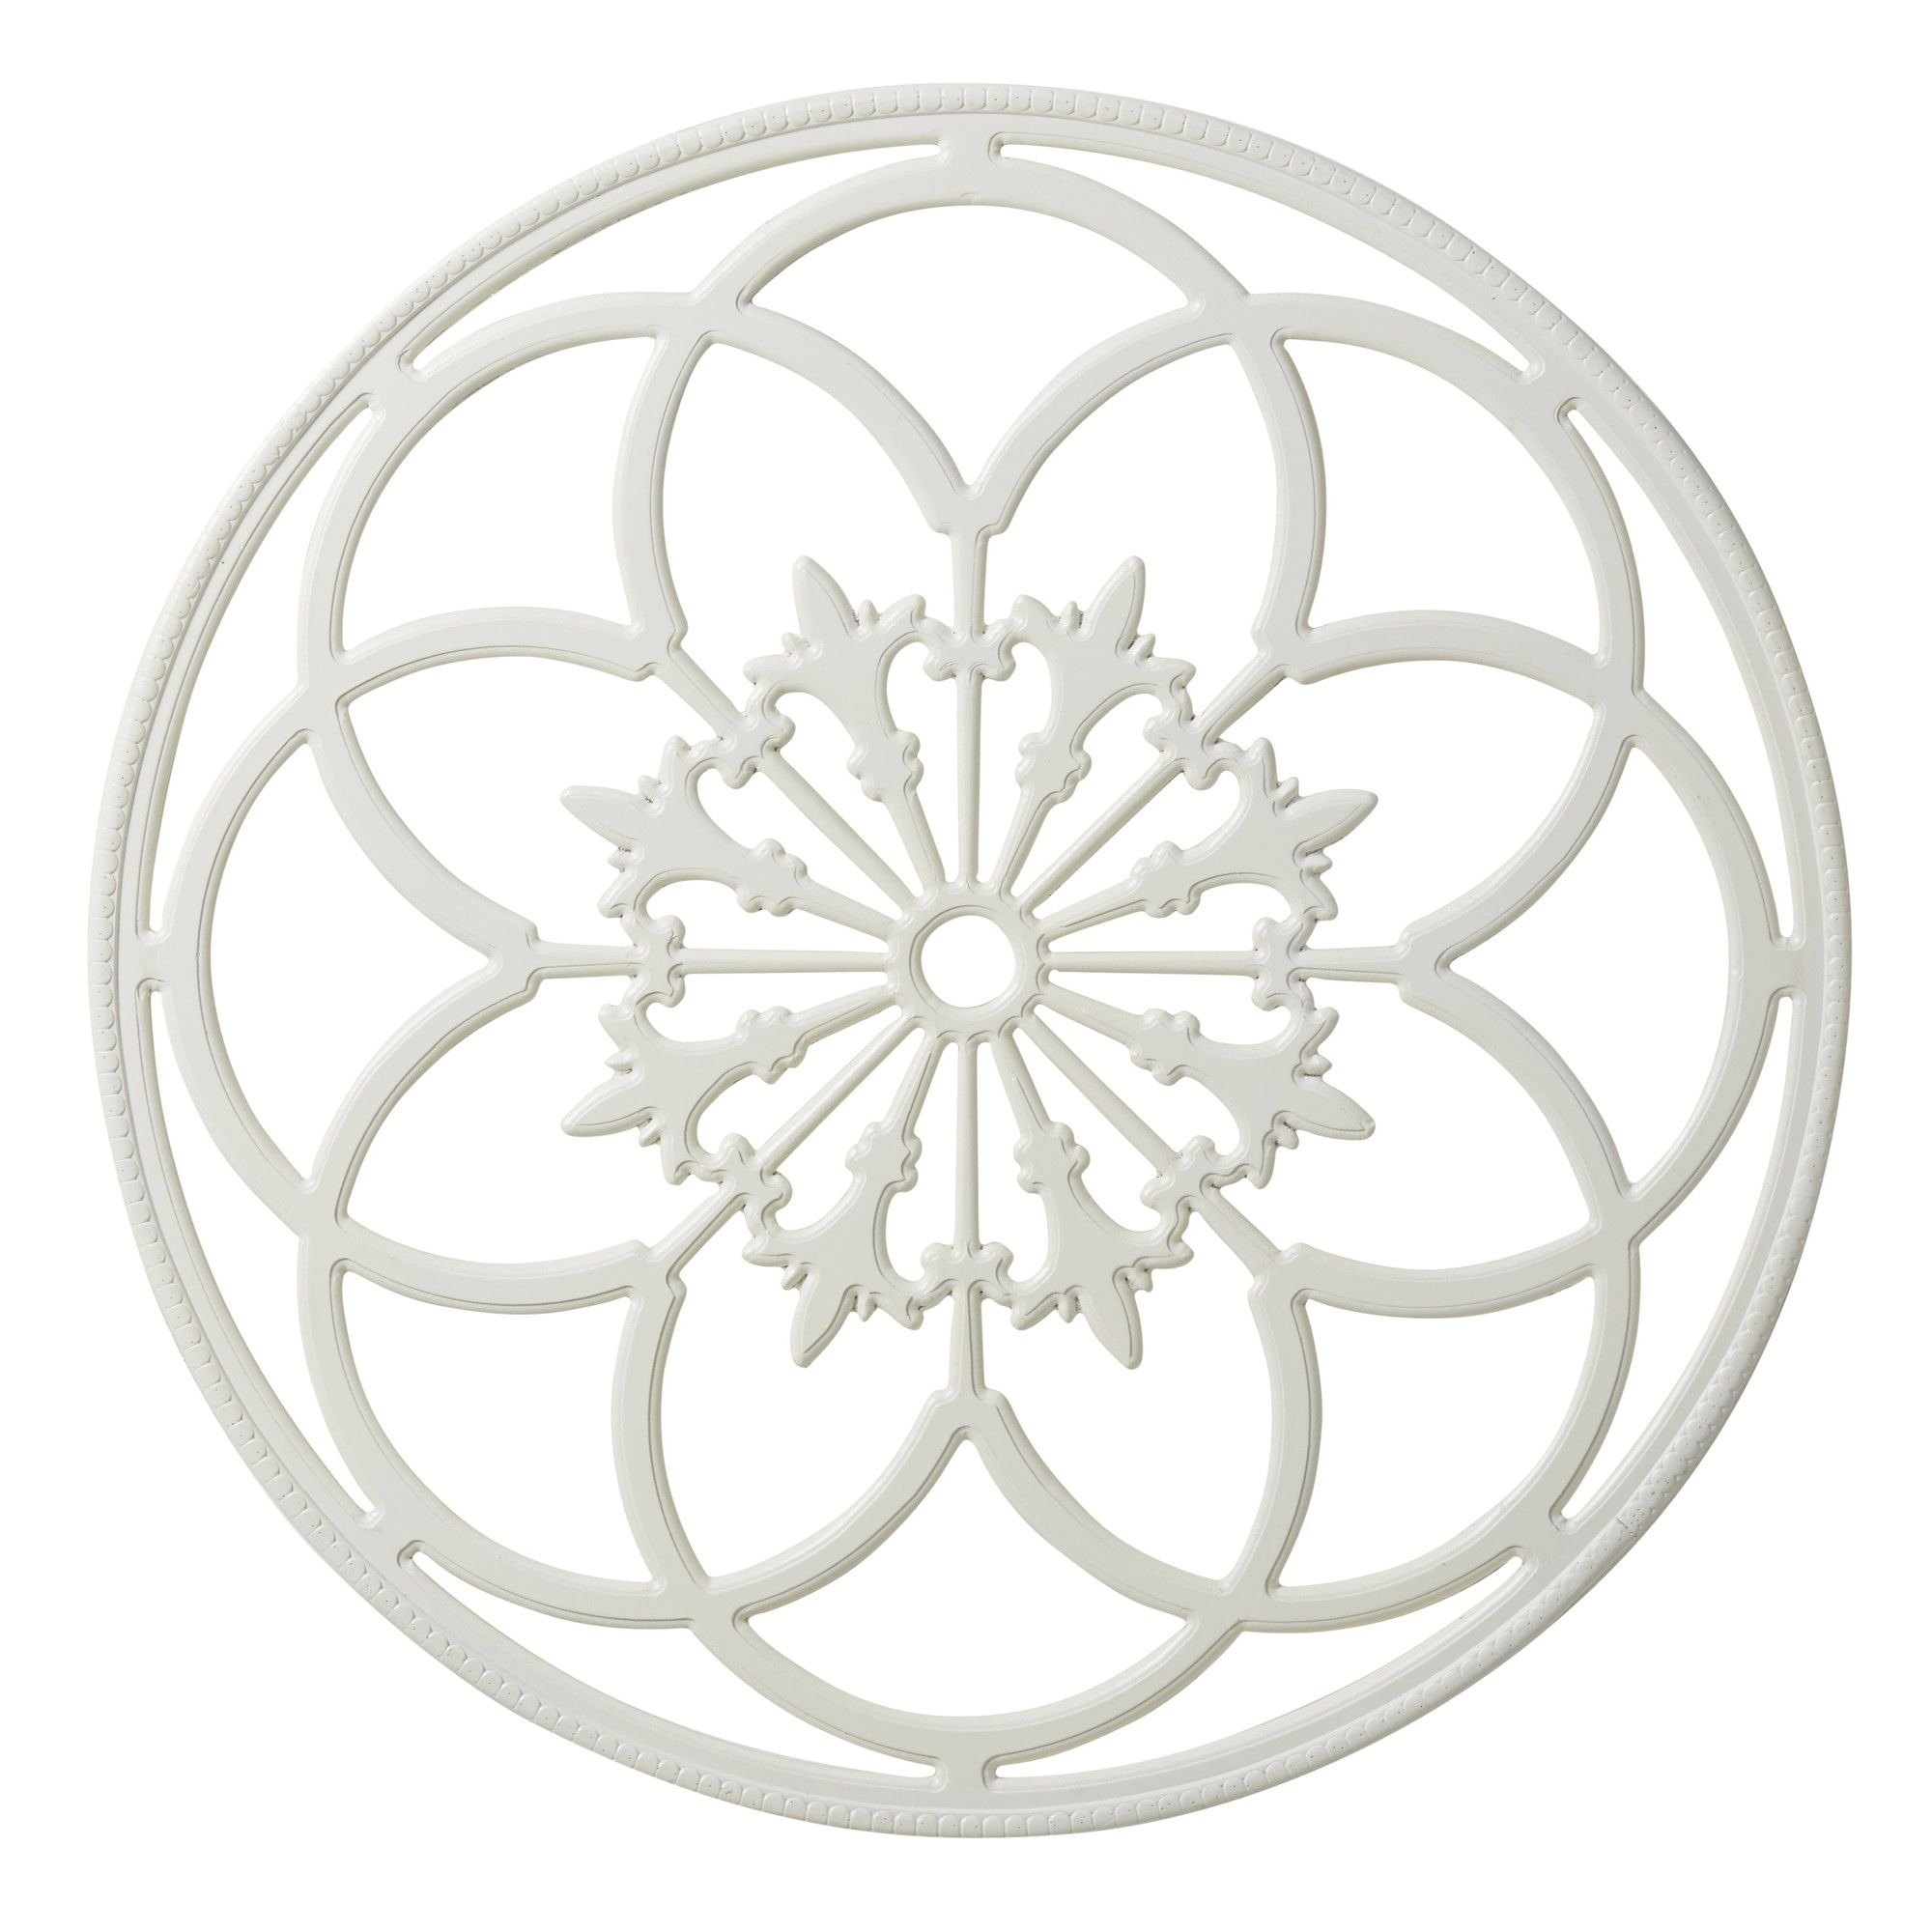 Ondelette ornate wood round wall décor products pinterest products